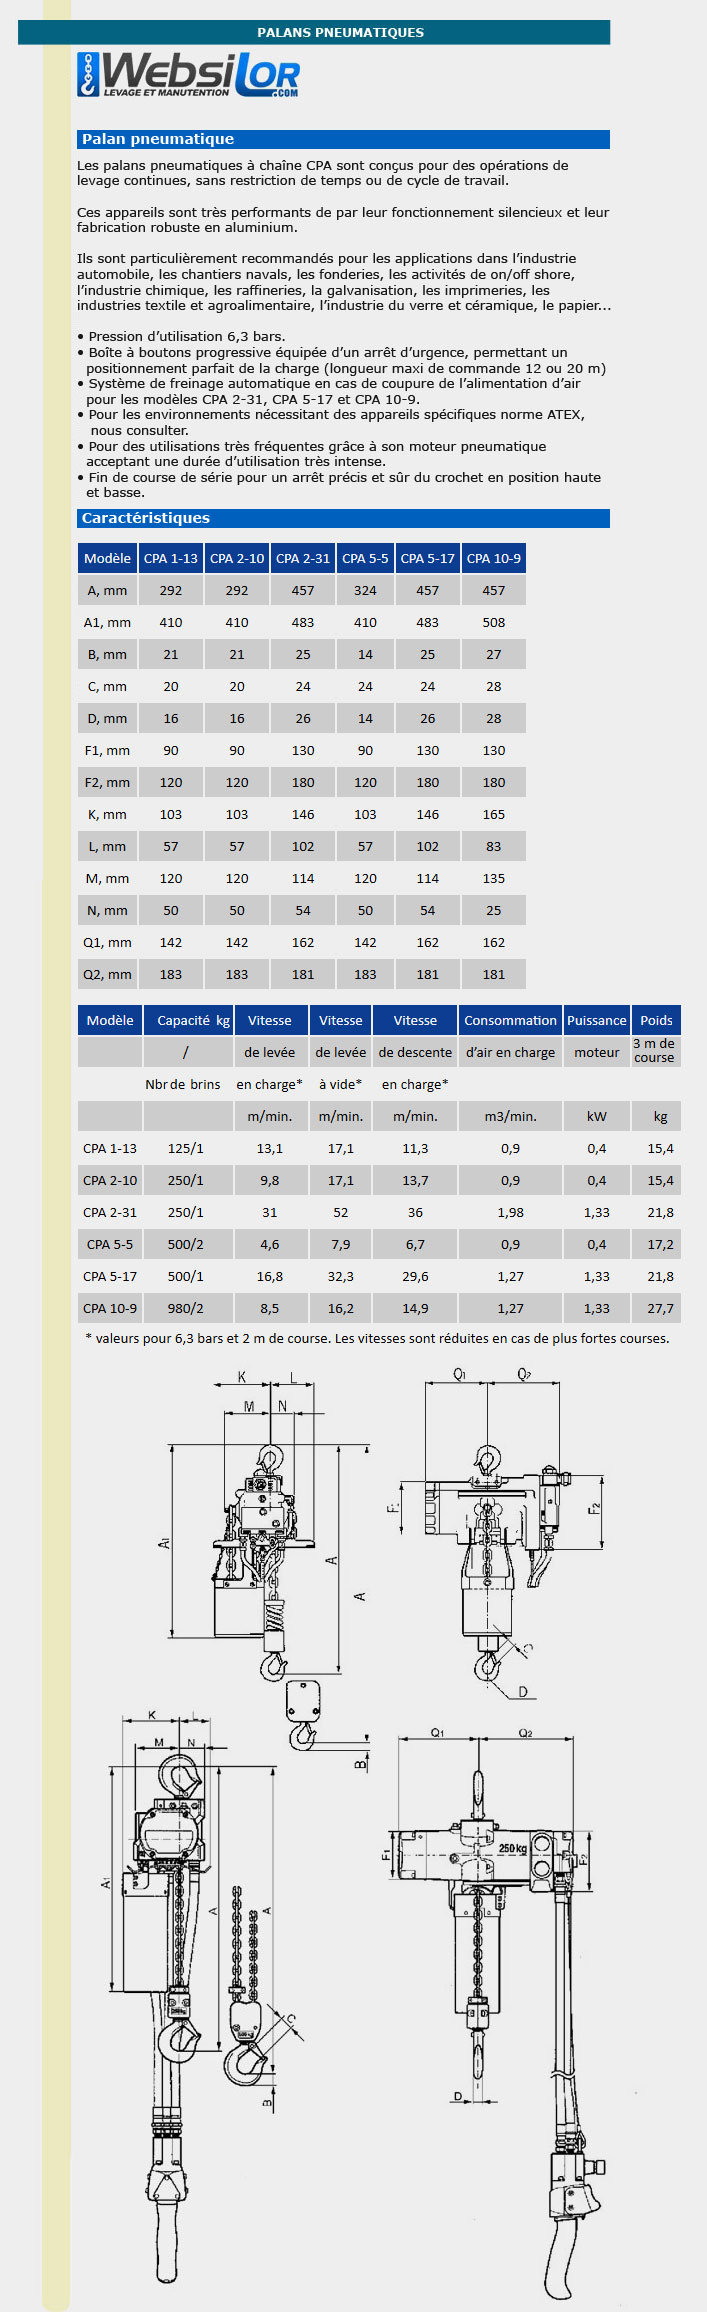 Informations techniques Palan pneumatique Yale - 125 à 1000kg